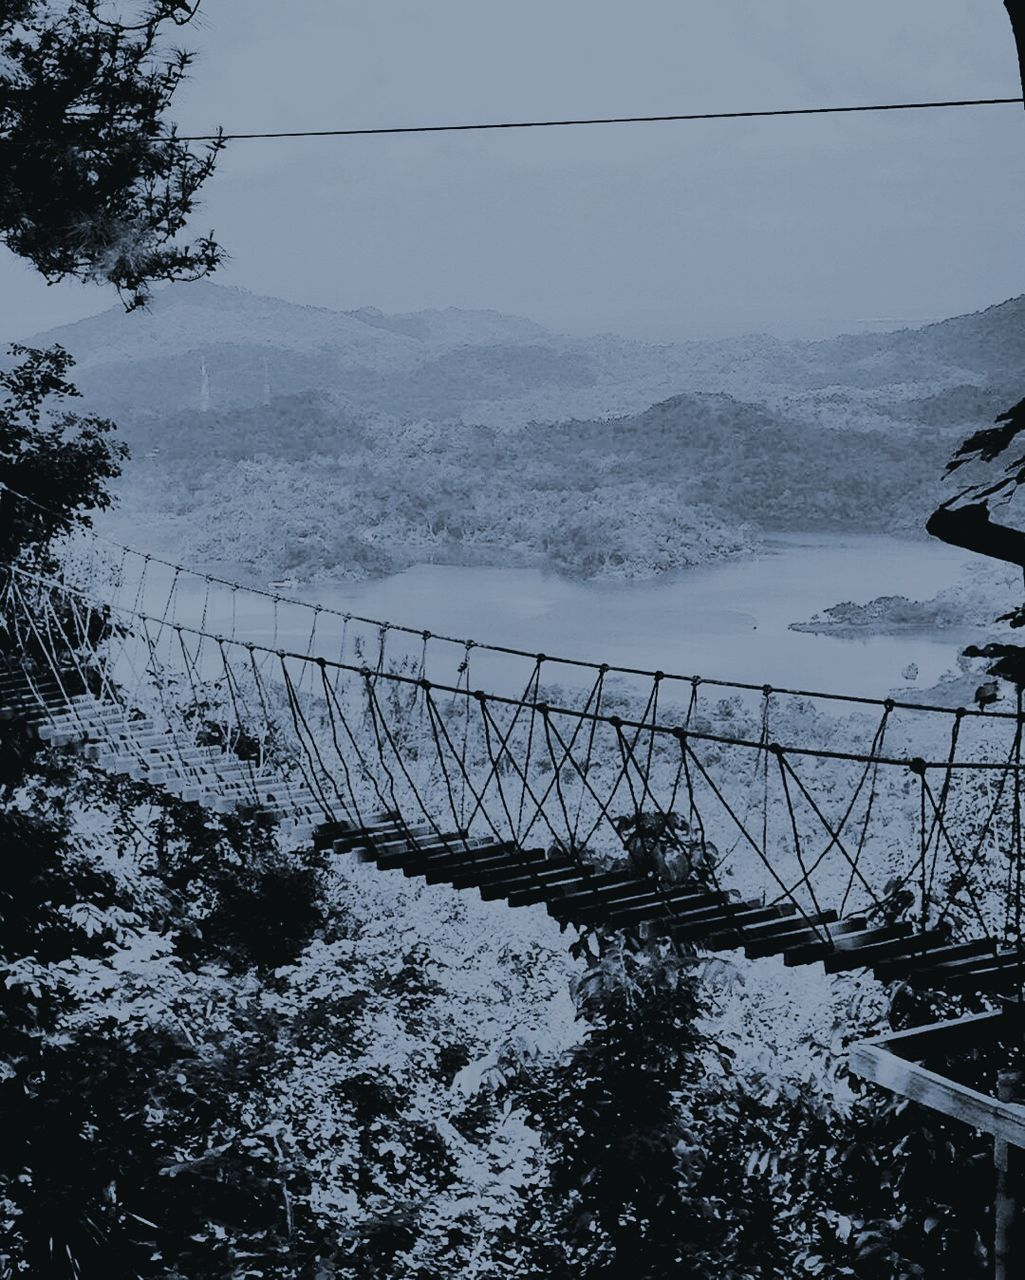 nature, mountain, snow, tree, winter, cold temperature, railing, day, no people, scenics, outdoors, beauty in nature, tranquil scene, tranquility, landscape, cable, water, mountain range, sky